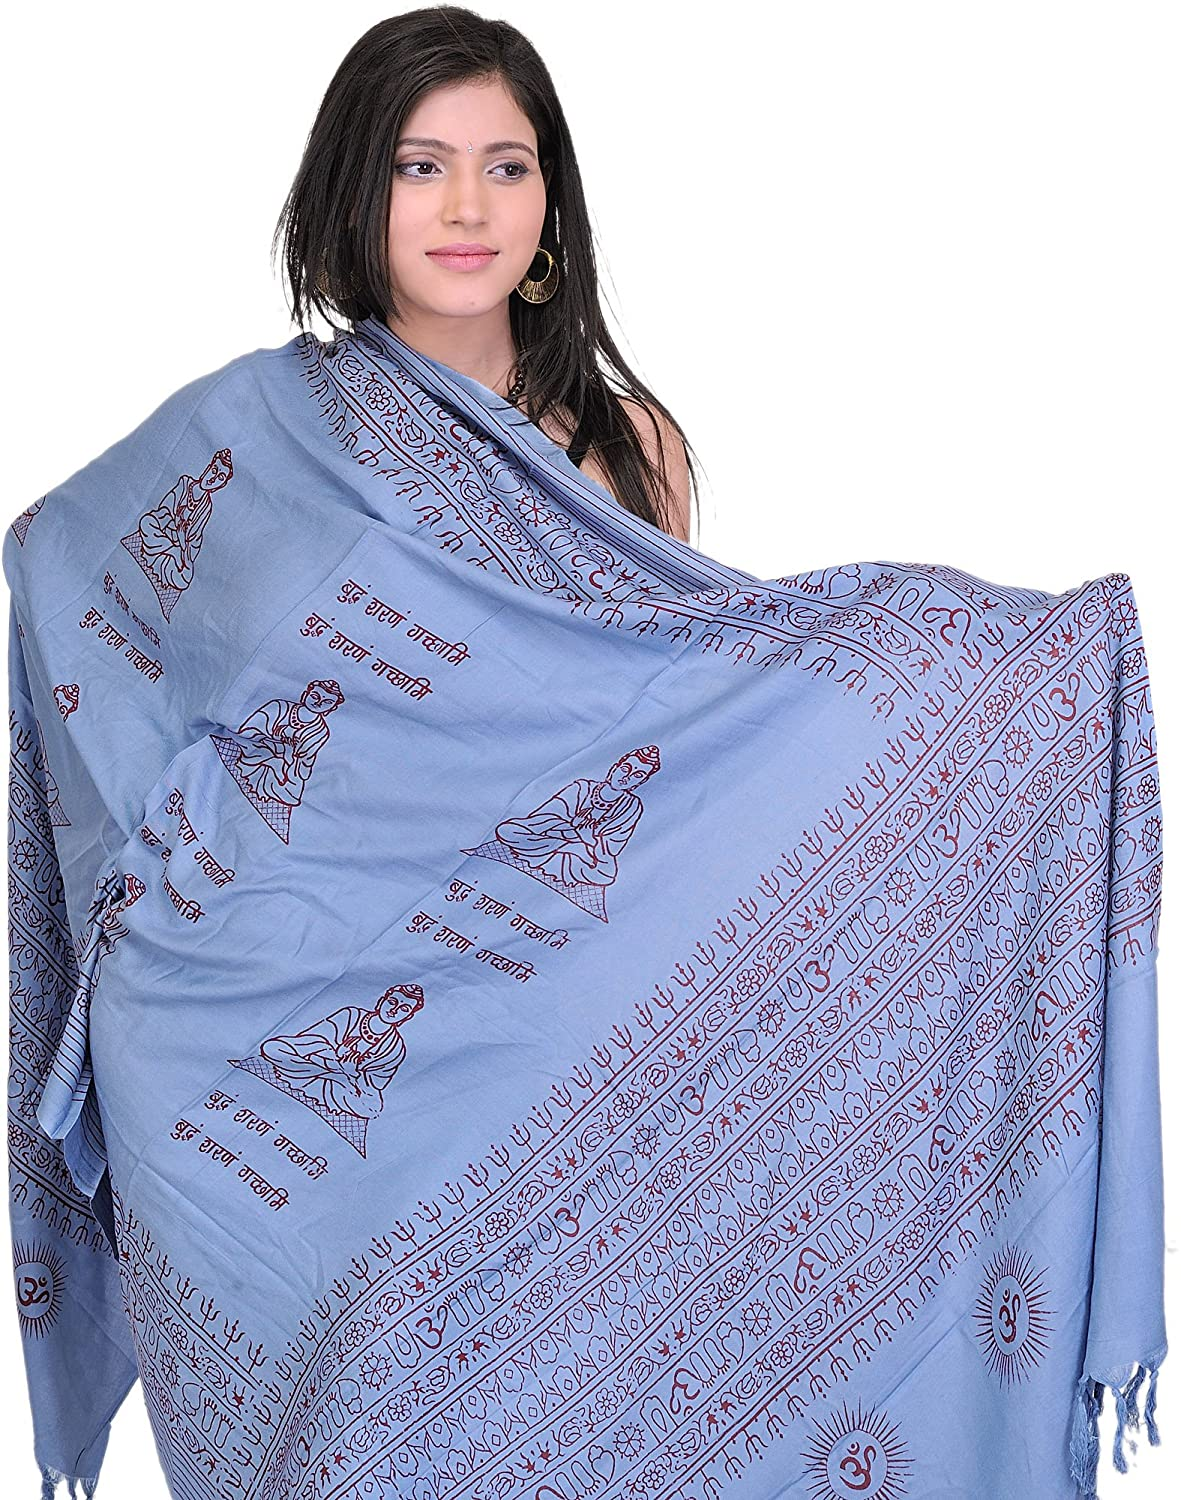 Exotic India Prayer Shawl of Gautam Buddha - Blue AR33